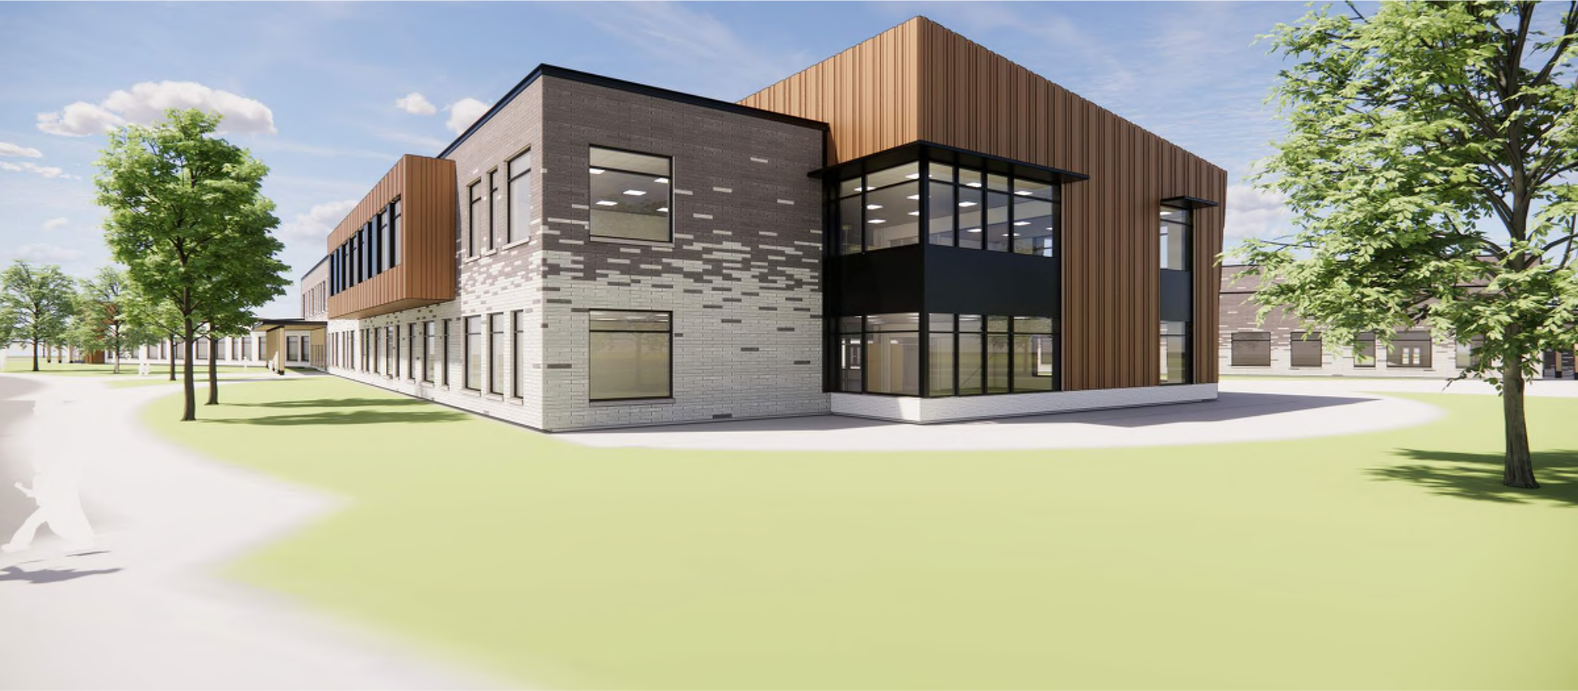 Tointon Academy of Pre-Engineering Project Photo